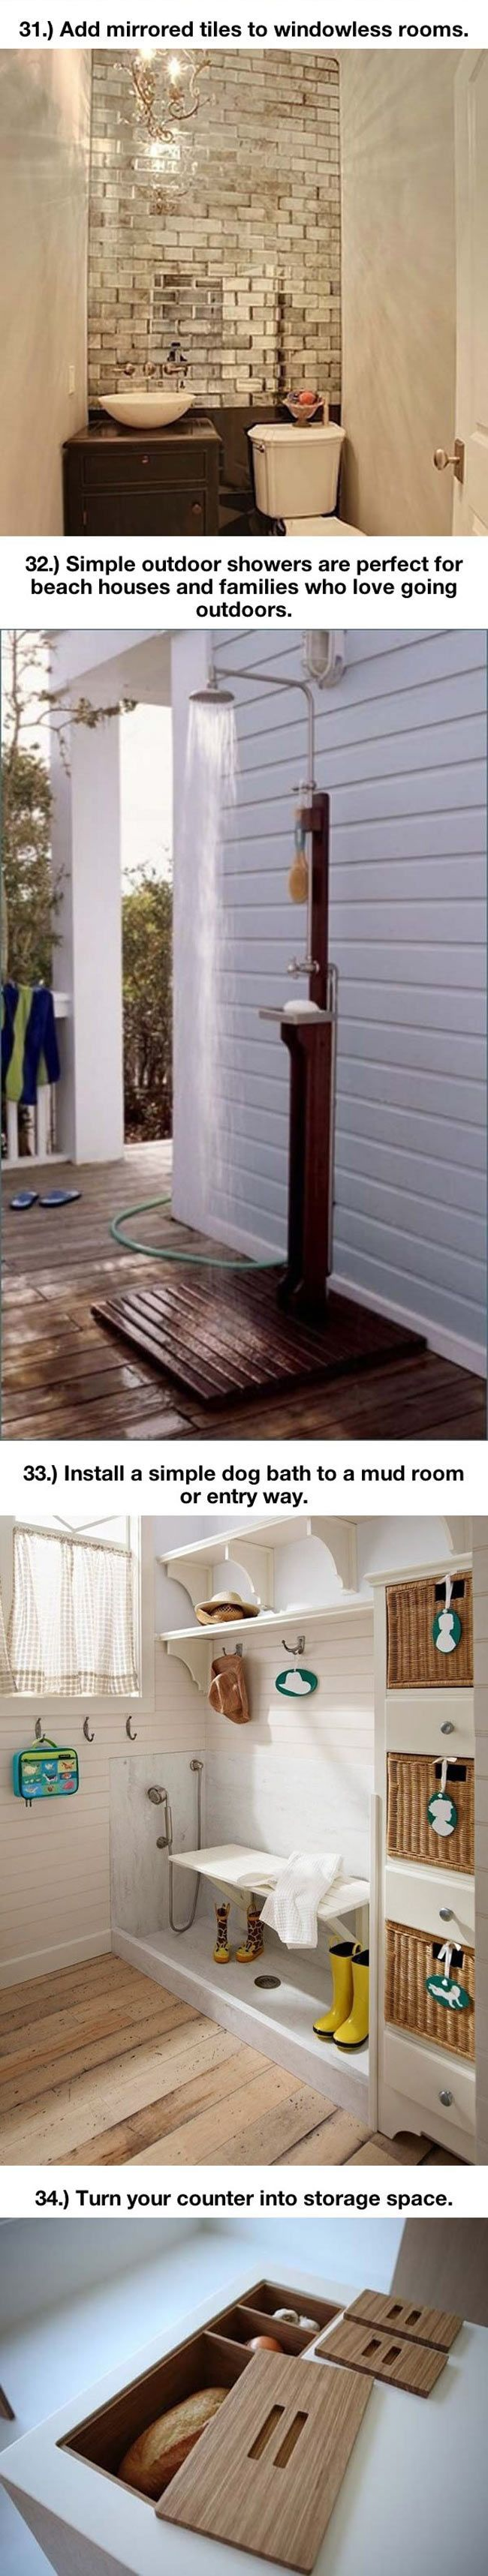 That Will Make Your Home Extremely Awesome - FB TroublemakersFB Troublemakers